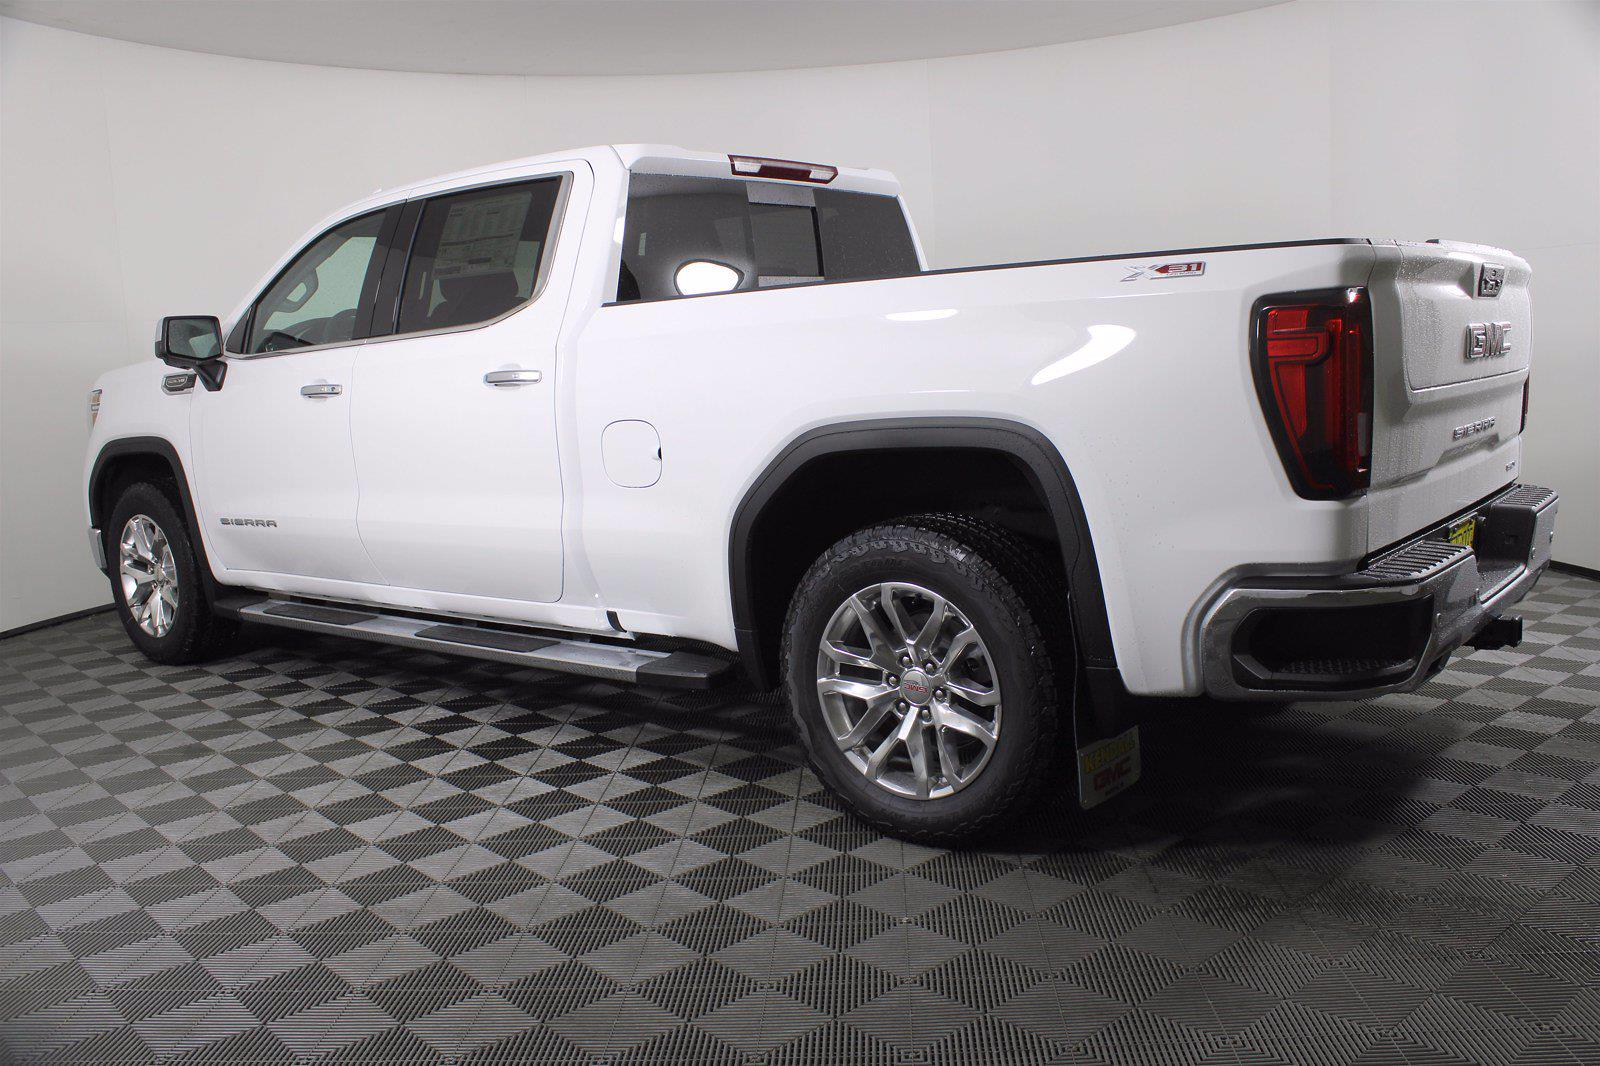 2021 GMC Sierra 1500 Crew Cab 4x4, Pickup #D410589 - photo 1